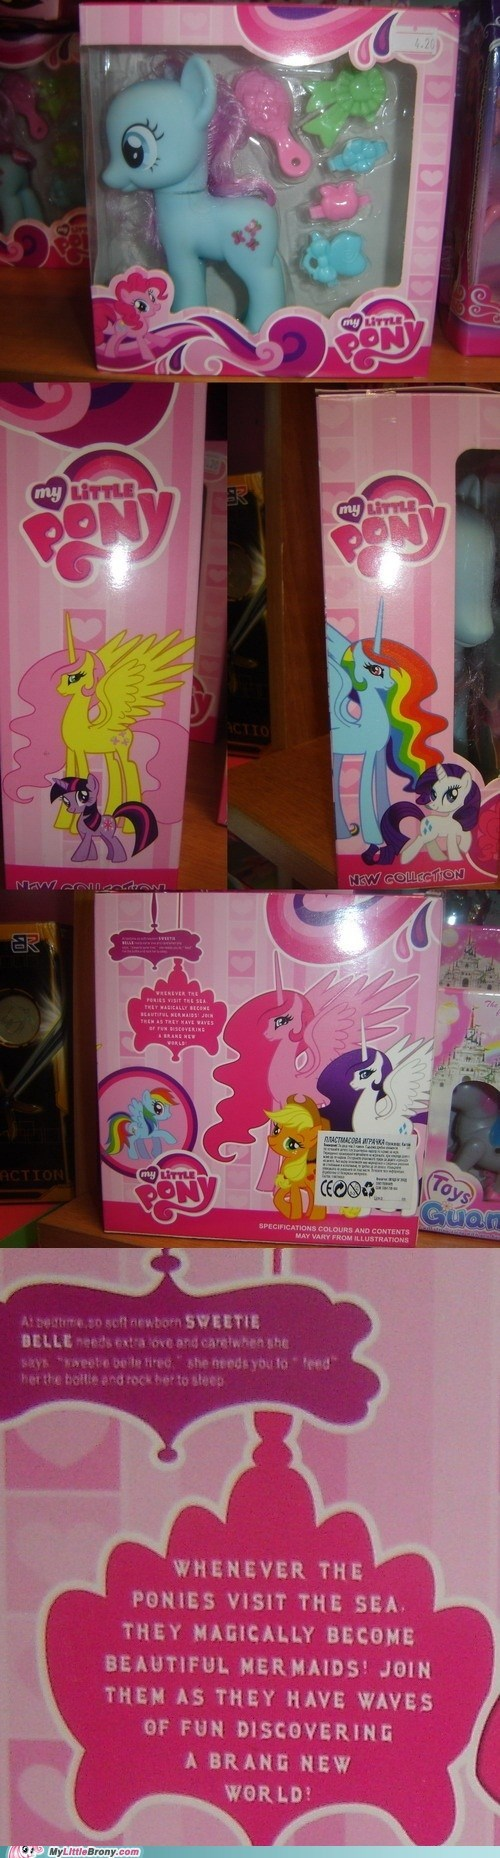 toys alicorns seems legit - 7158043392